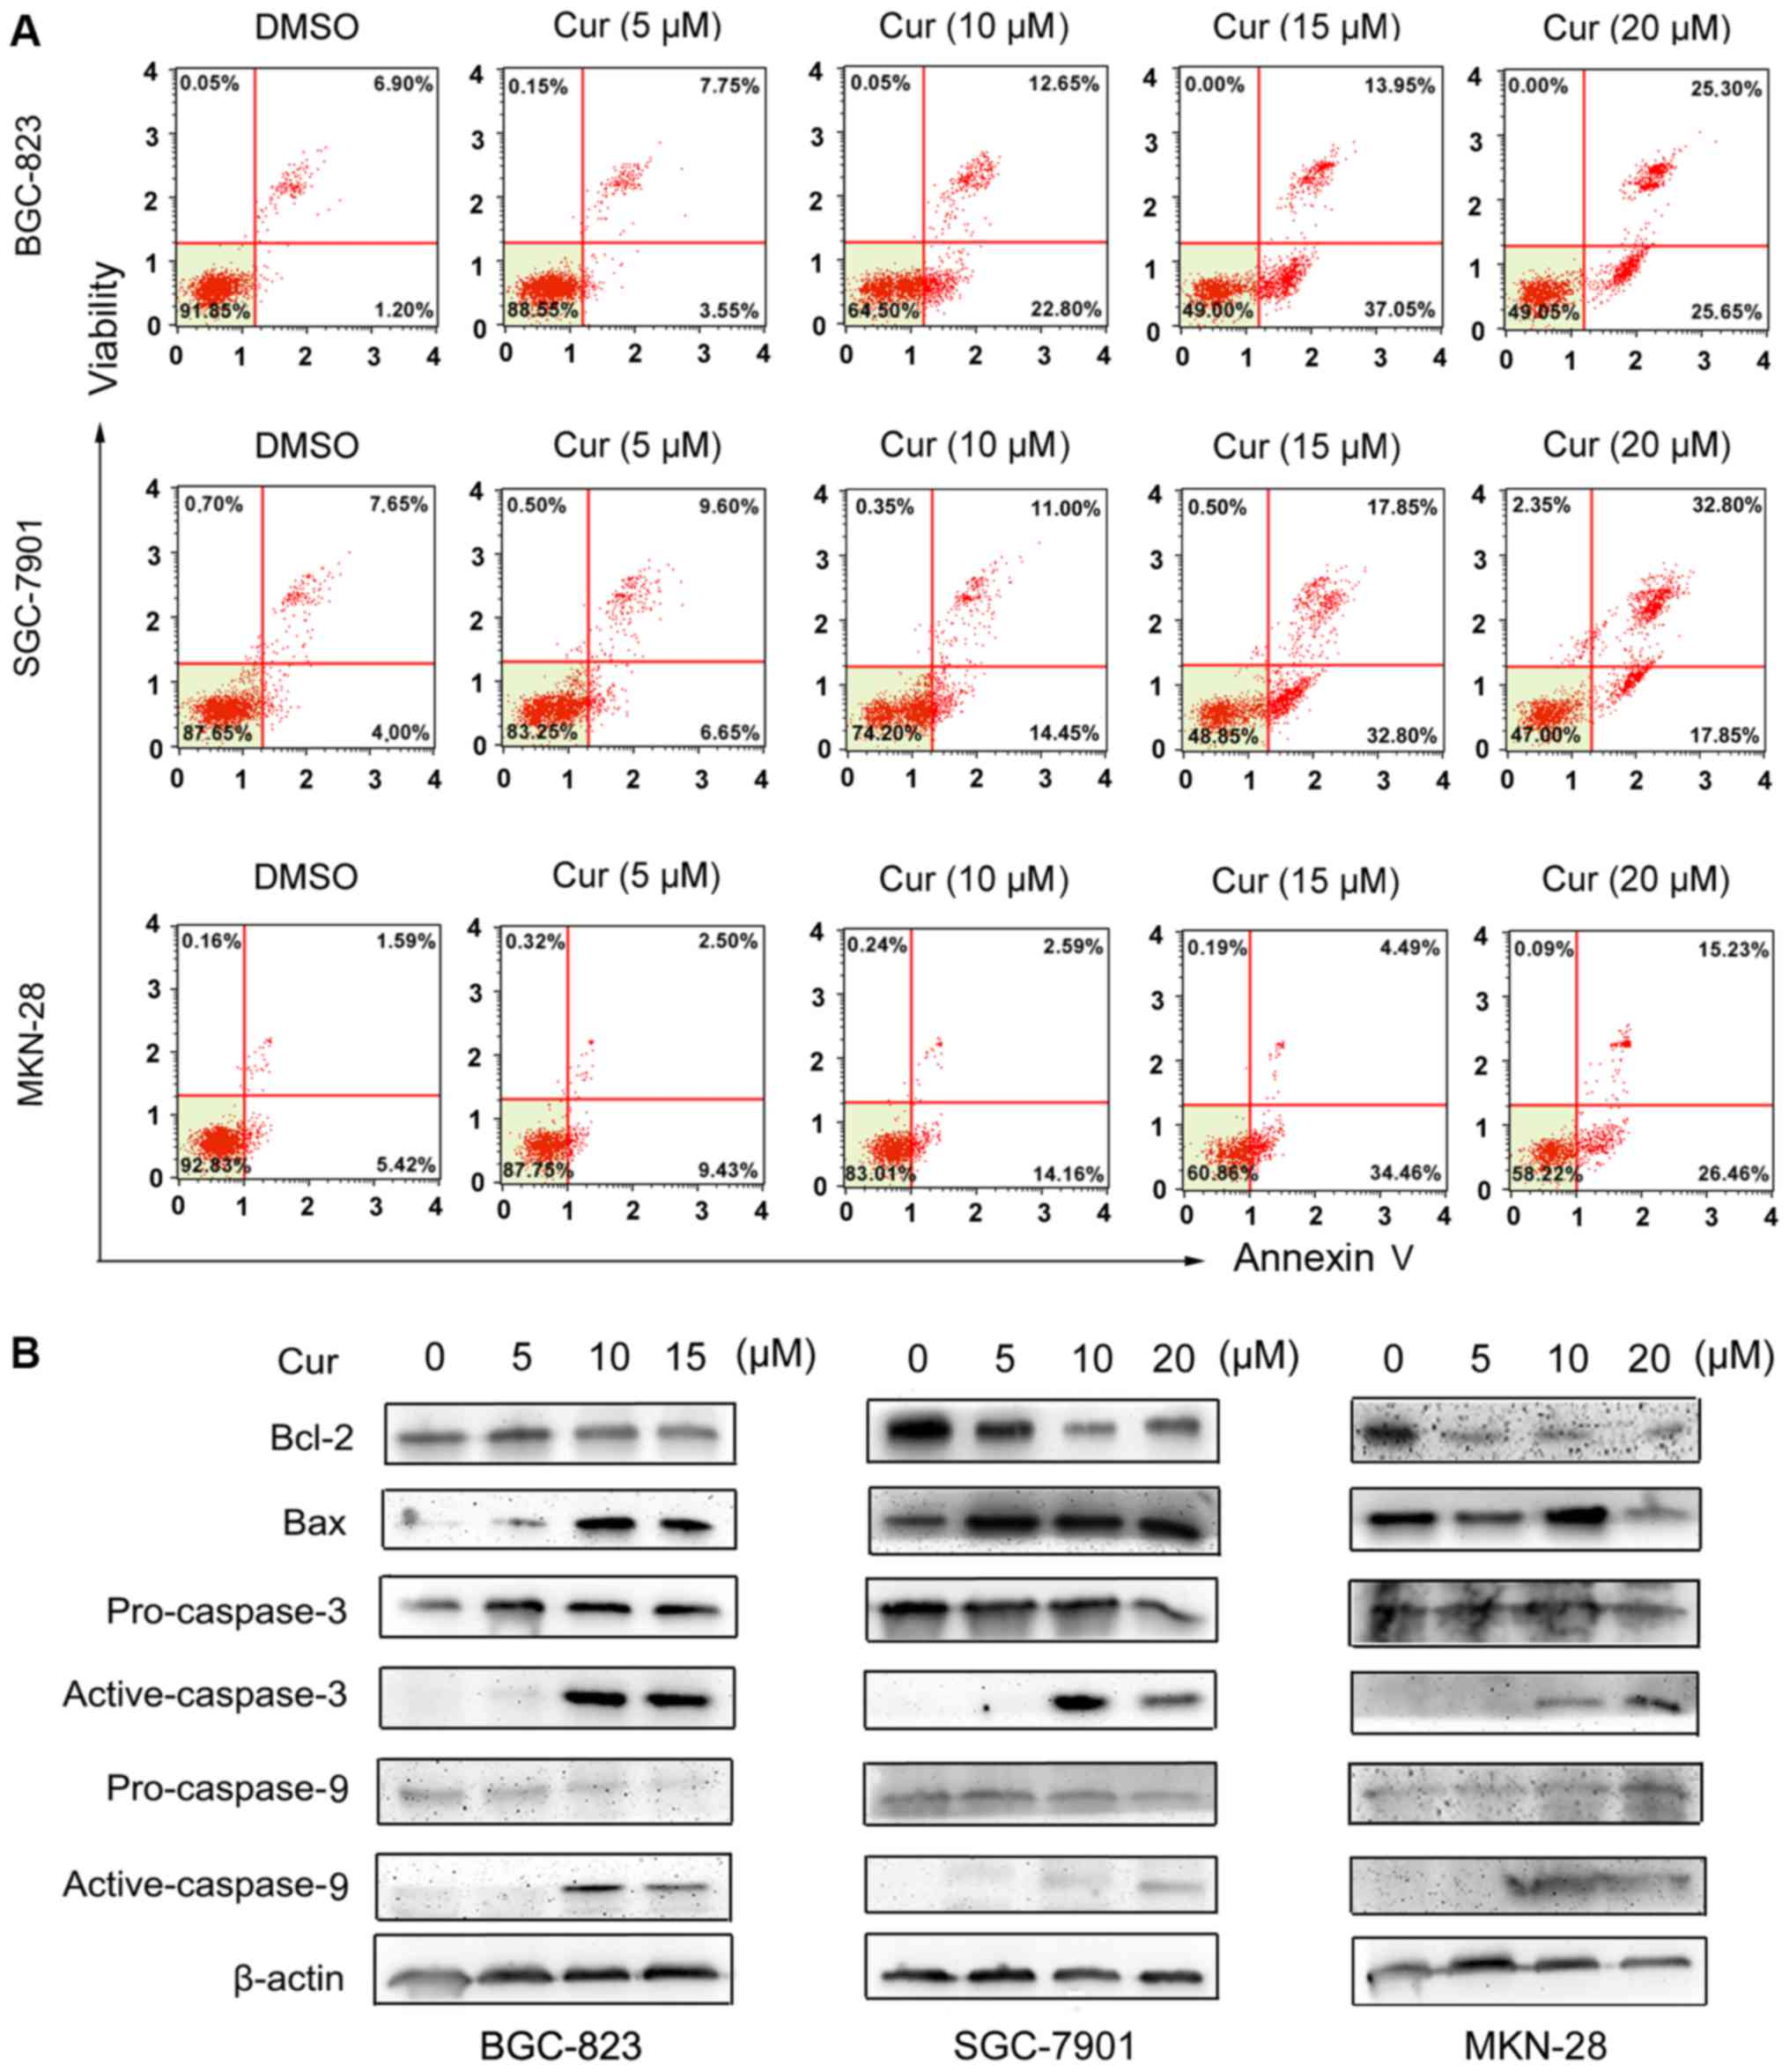 Curcumin induces apoptotic cell death and protective